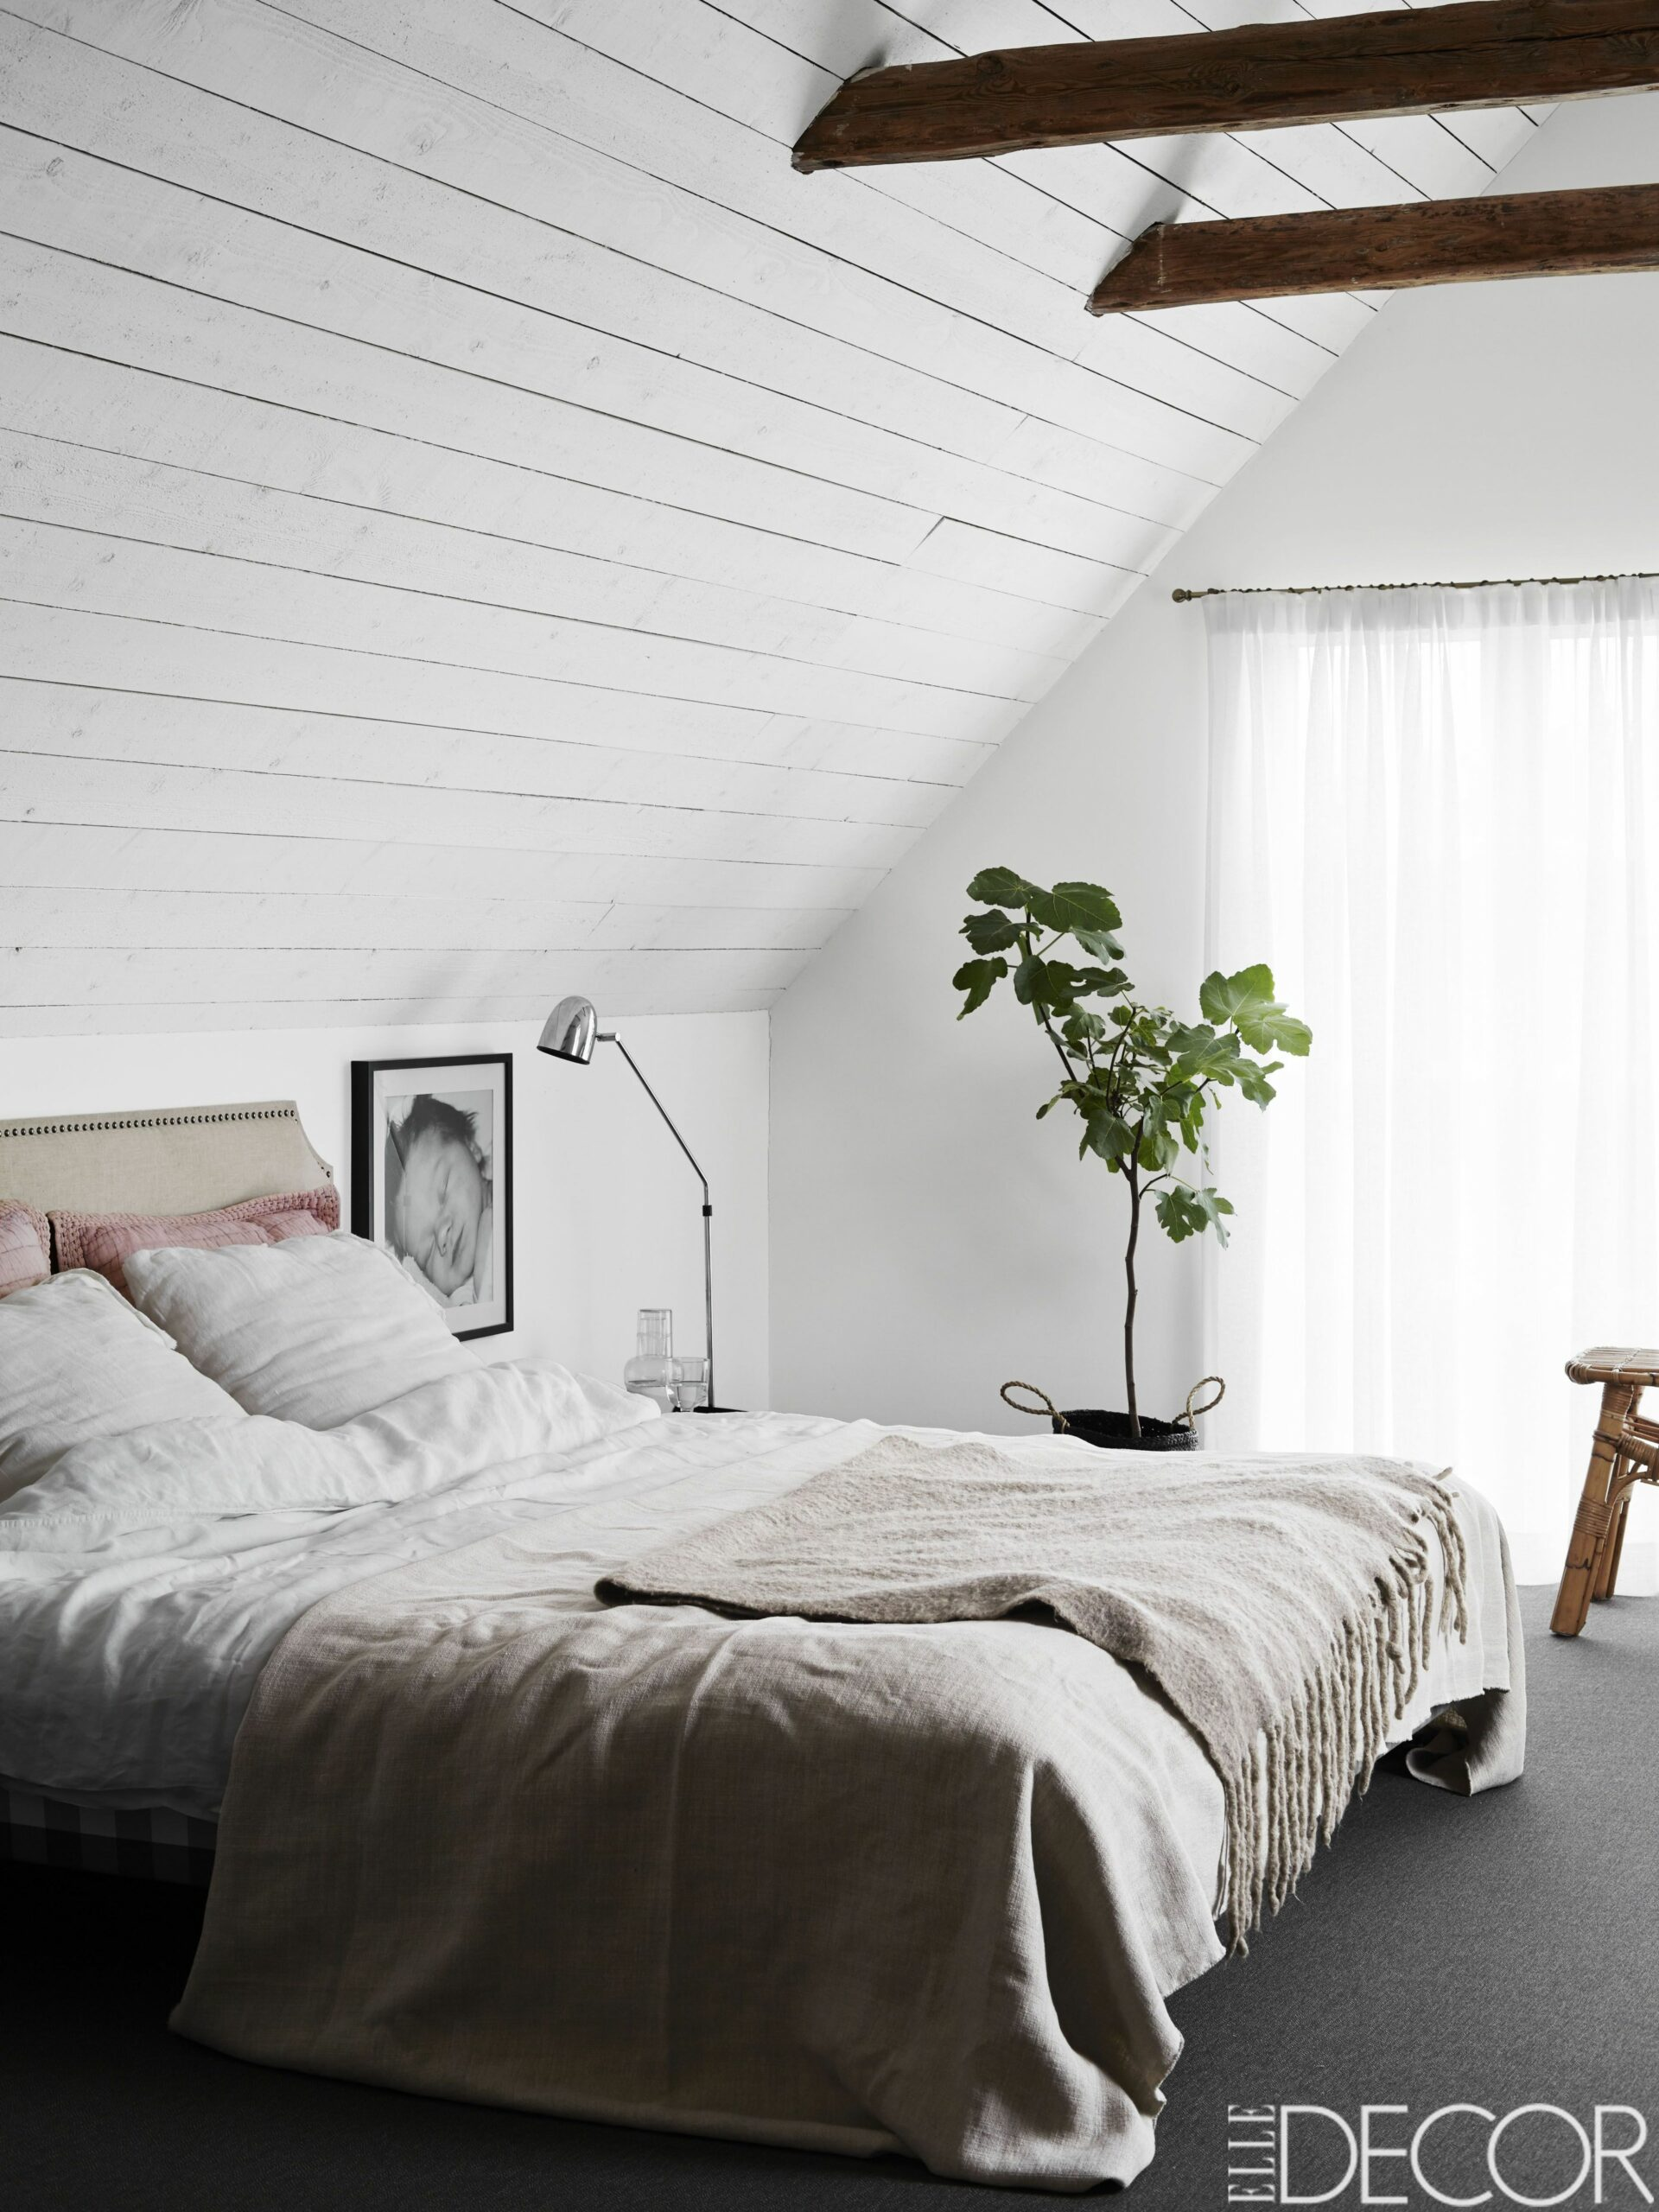 10 Minimalist Bedroom Decor Ideas - Modern Designs for Minimalist ...